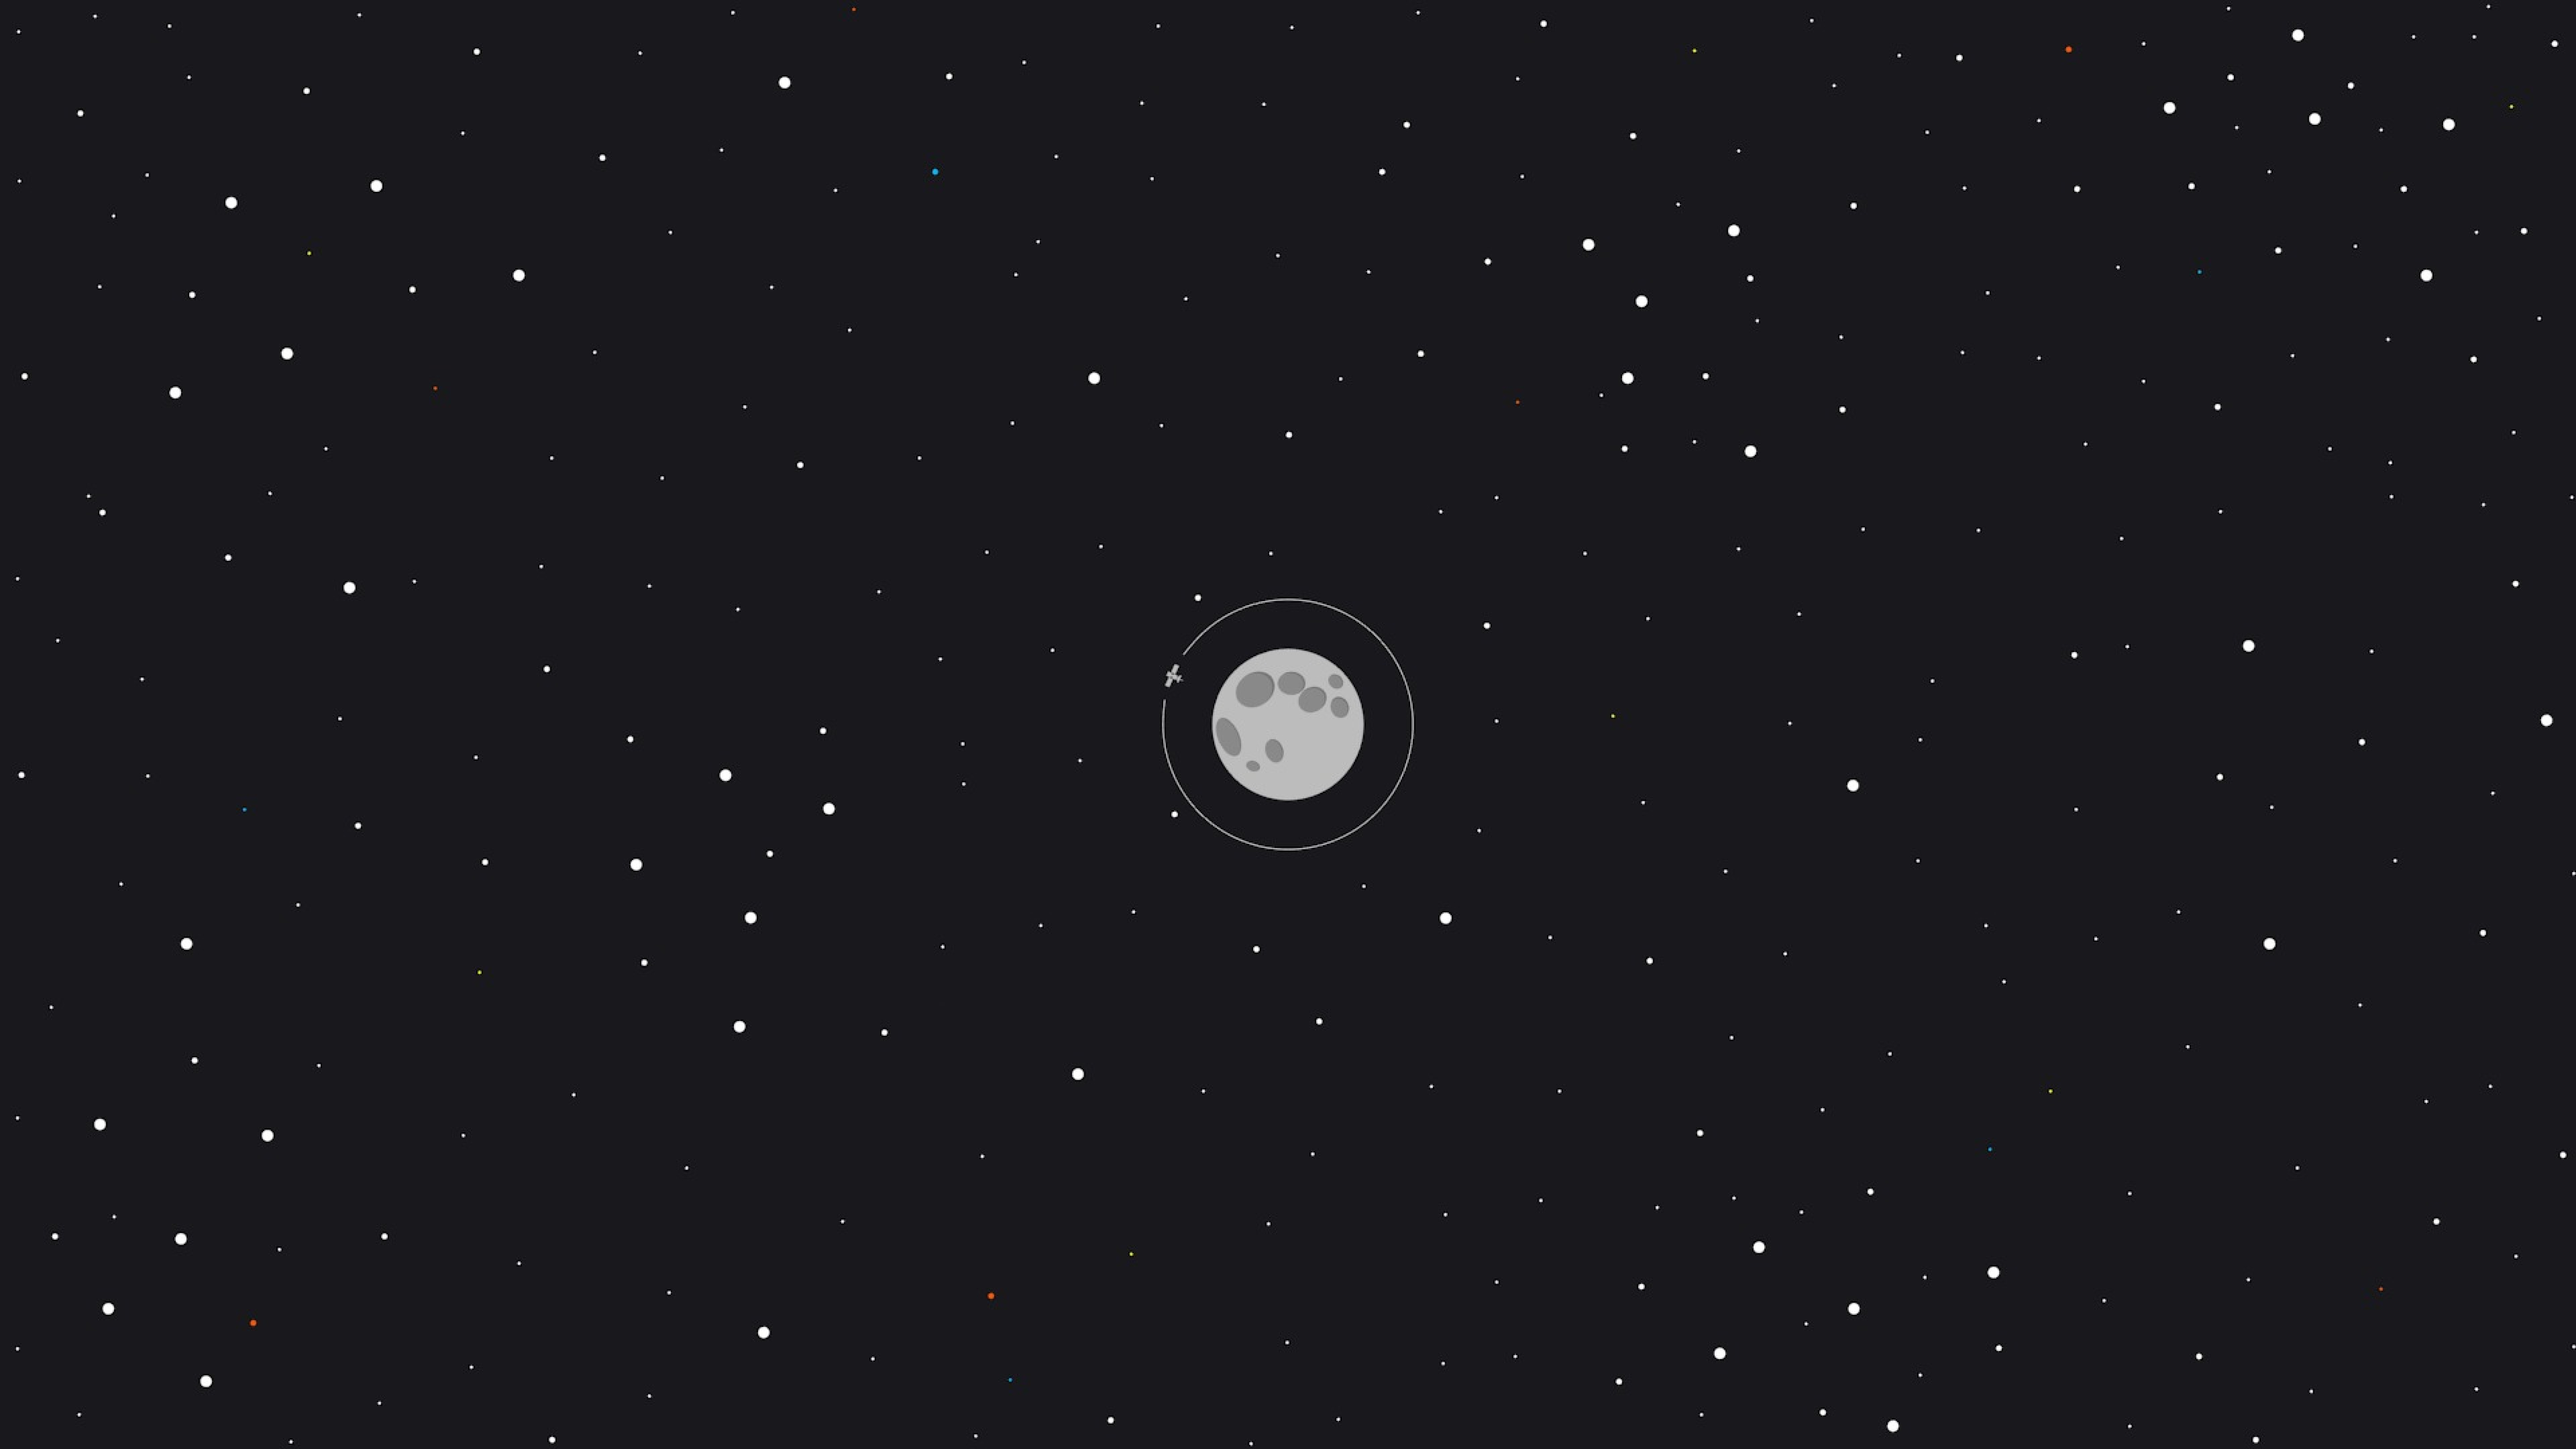 Download Pubg Minimalist Pophead 7680x4320 Resolution: Moon Space Minimal, Full HD Wallpaper